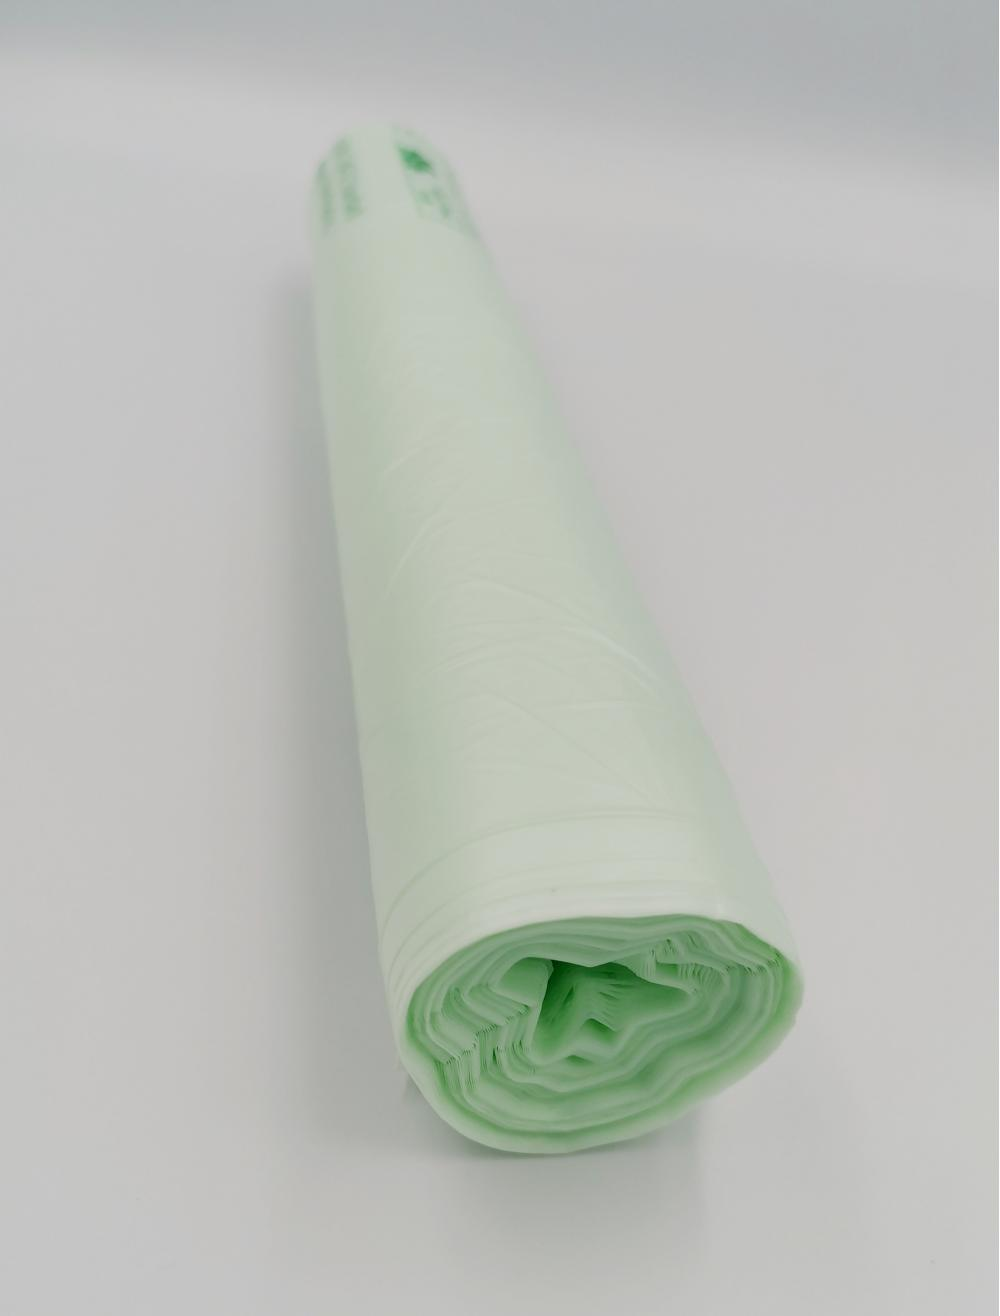 EN13432 Hazardous Trash Plastic Bags